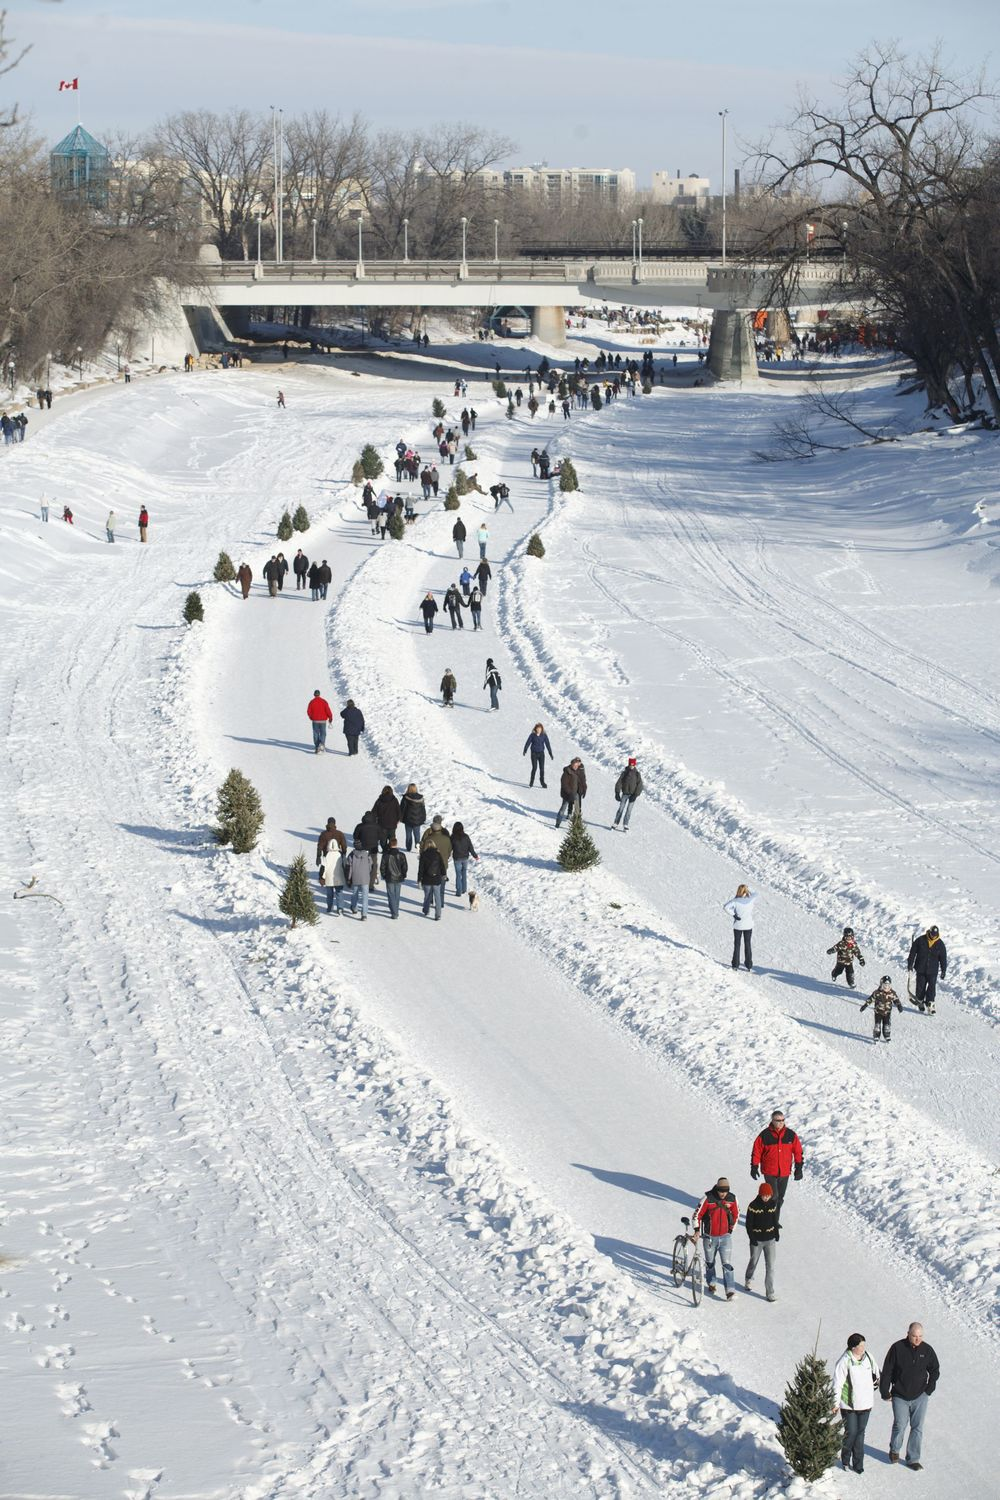 Winnipeg's ice skating trails